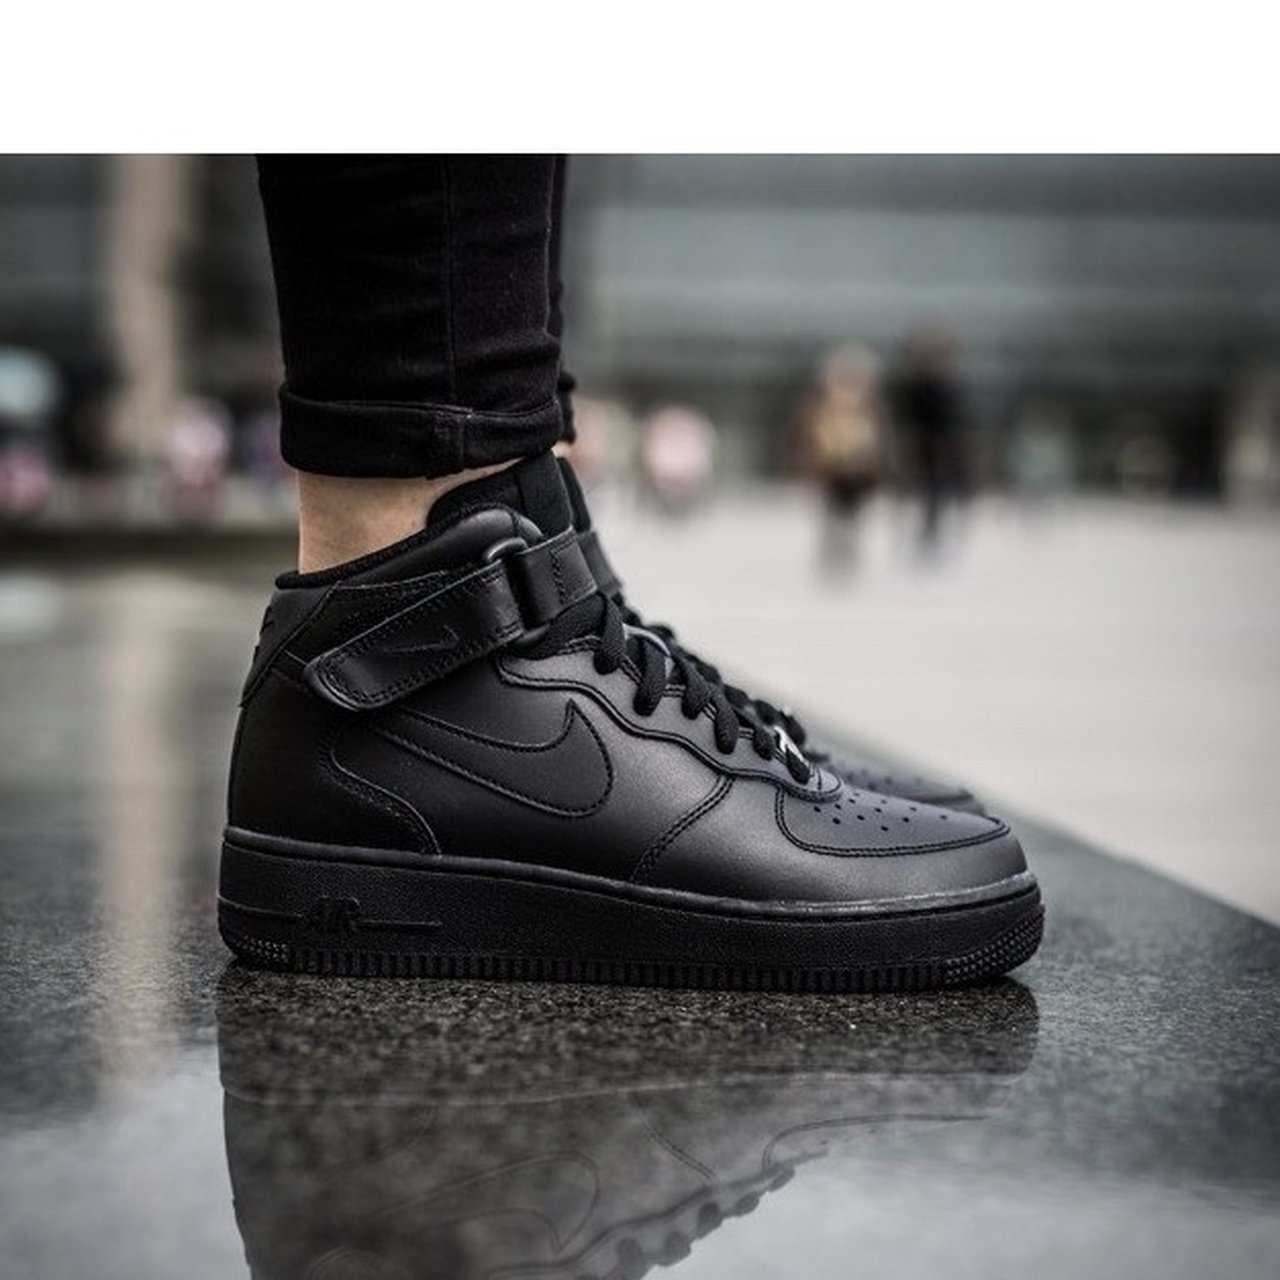 reputable site 8023f ff19c marthilda. 7 months ago. Parma, Italy. Nike air force nere alte ...